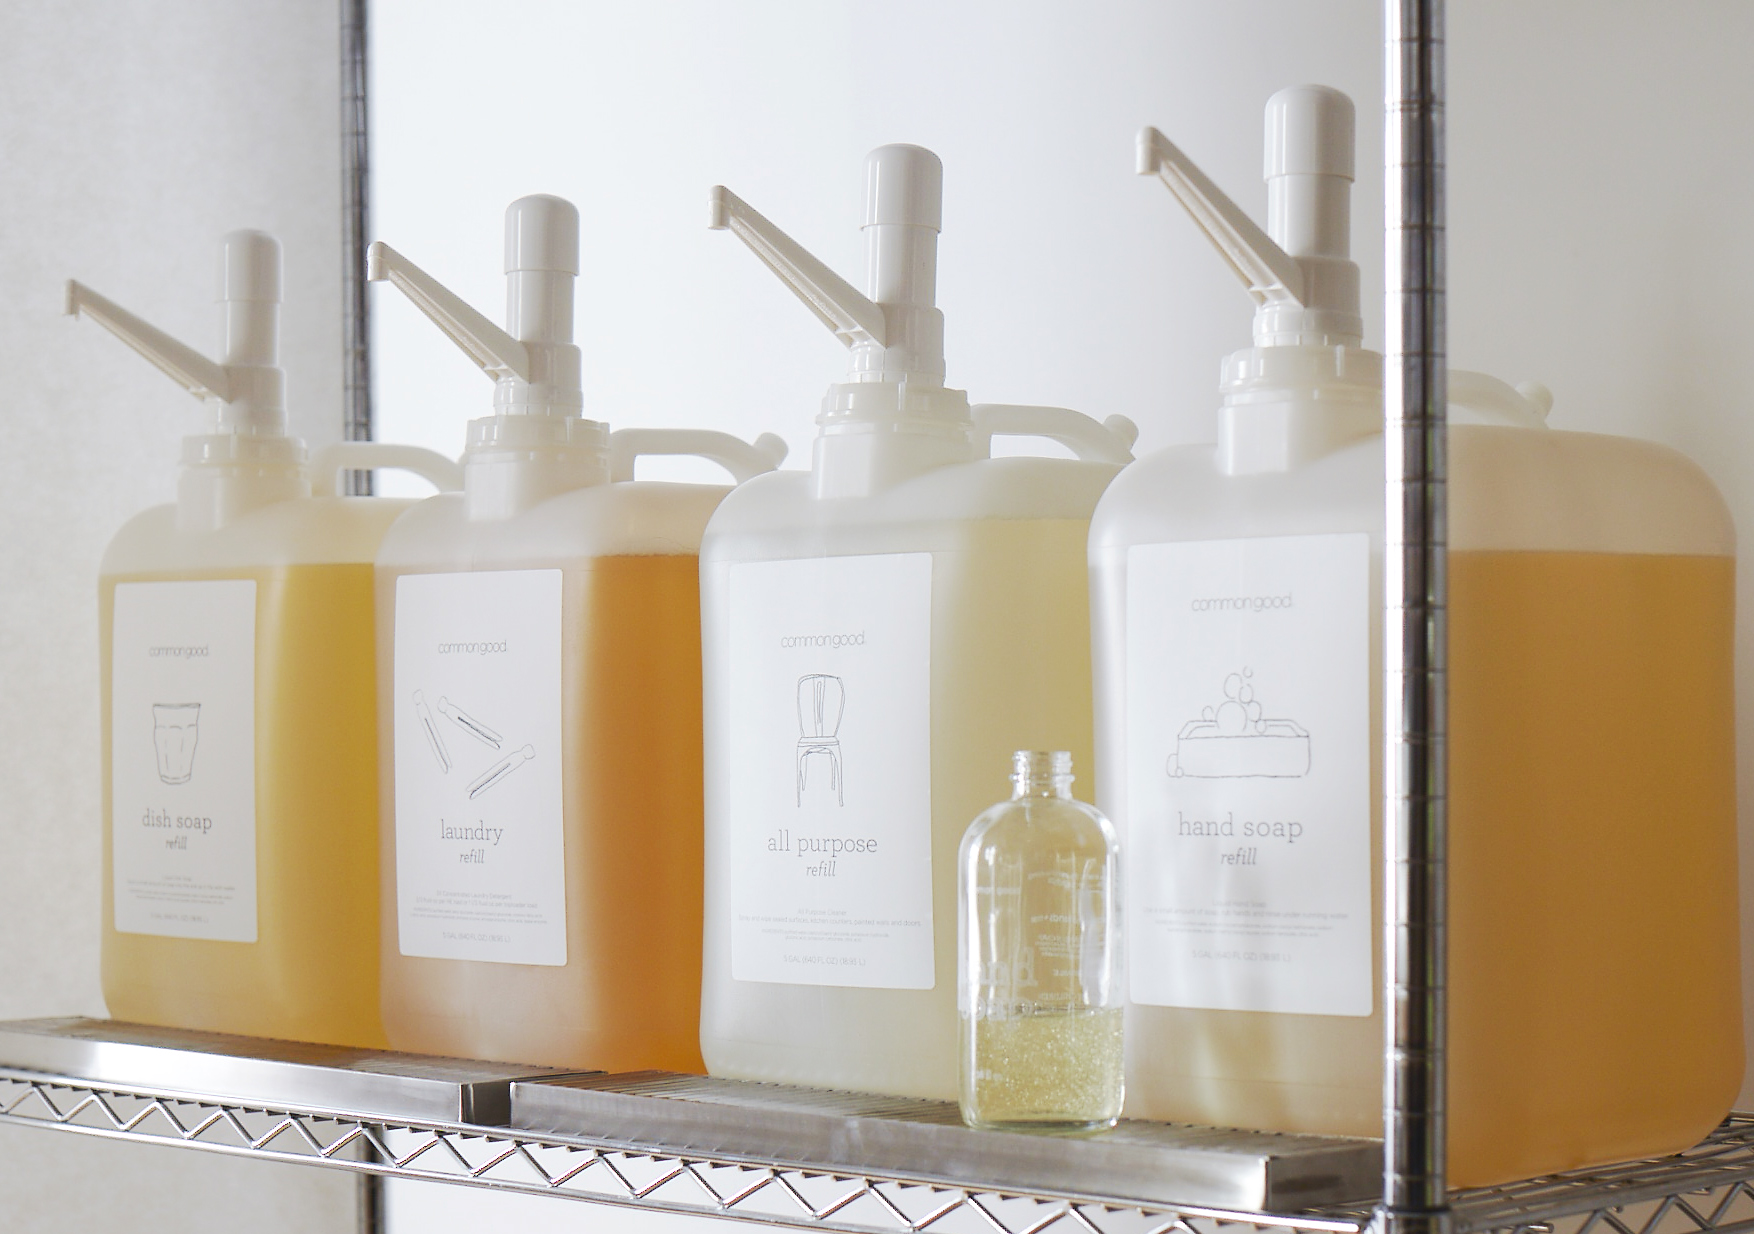 Non-toxic cleaning products Refill Station